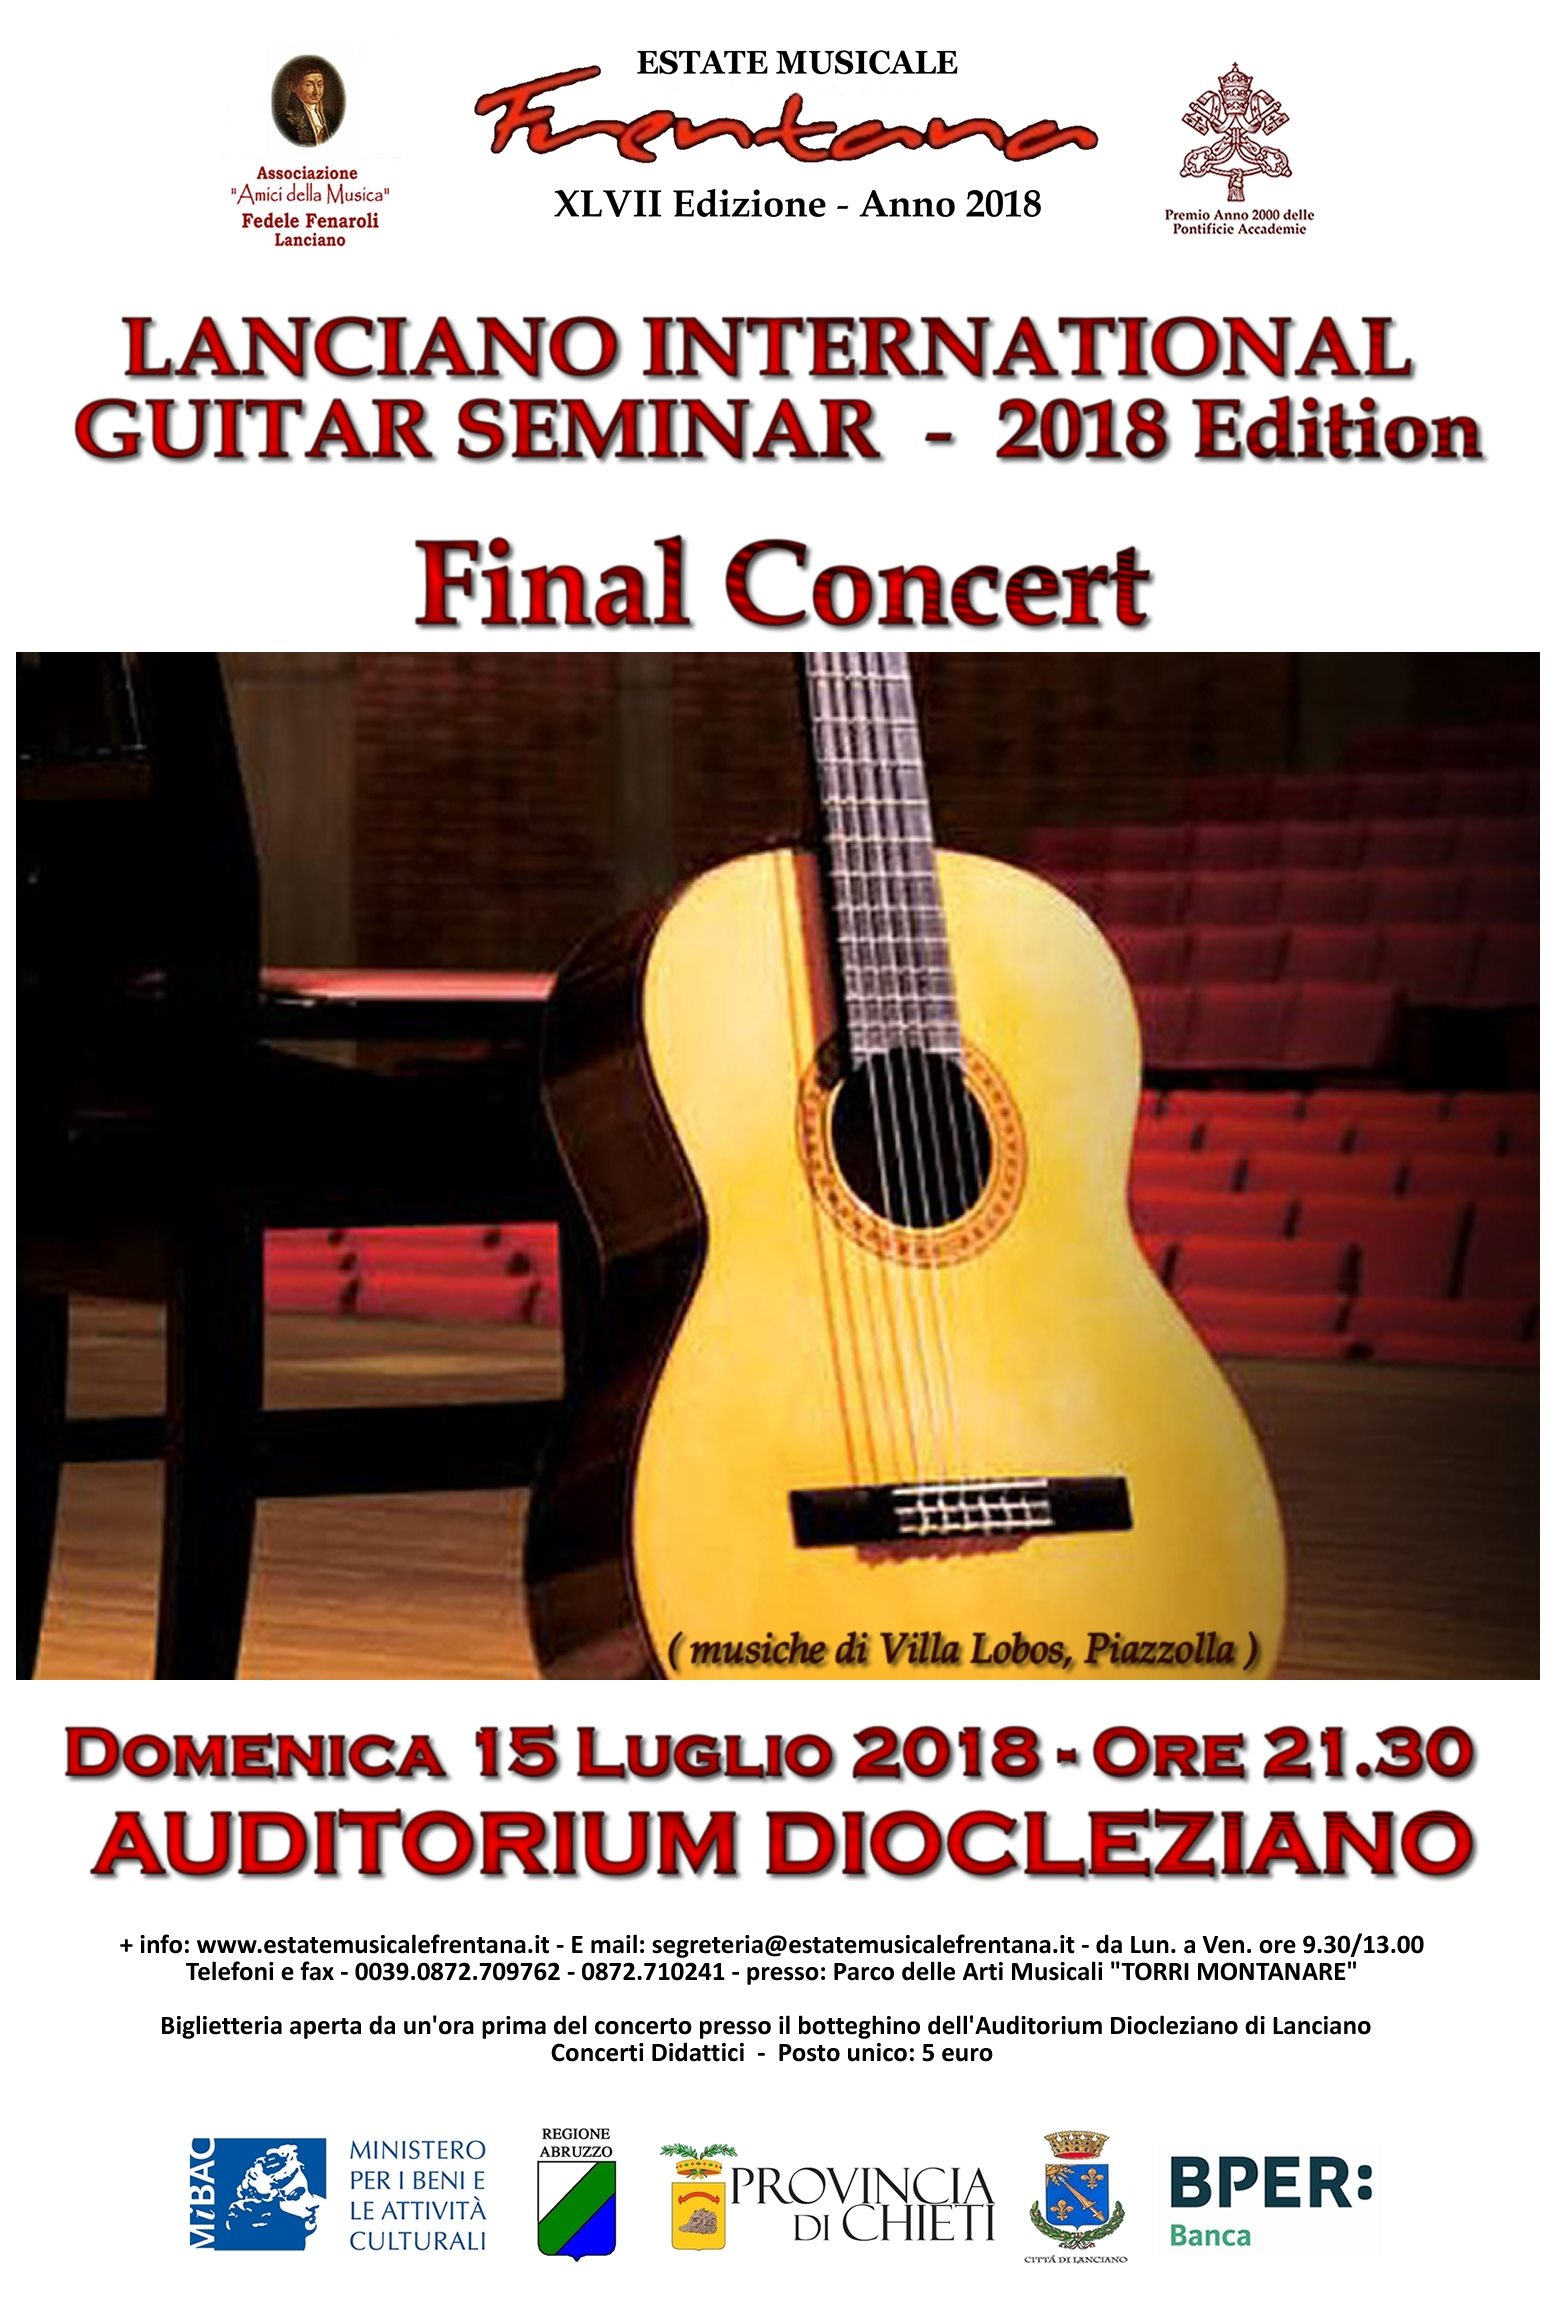 Final Concert - LANCIANO INTERNATIONAL GUITAR SEMINAR